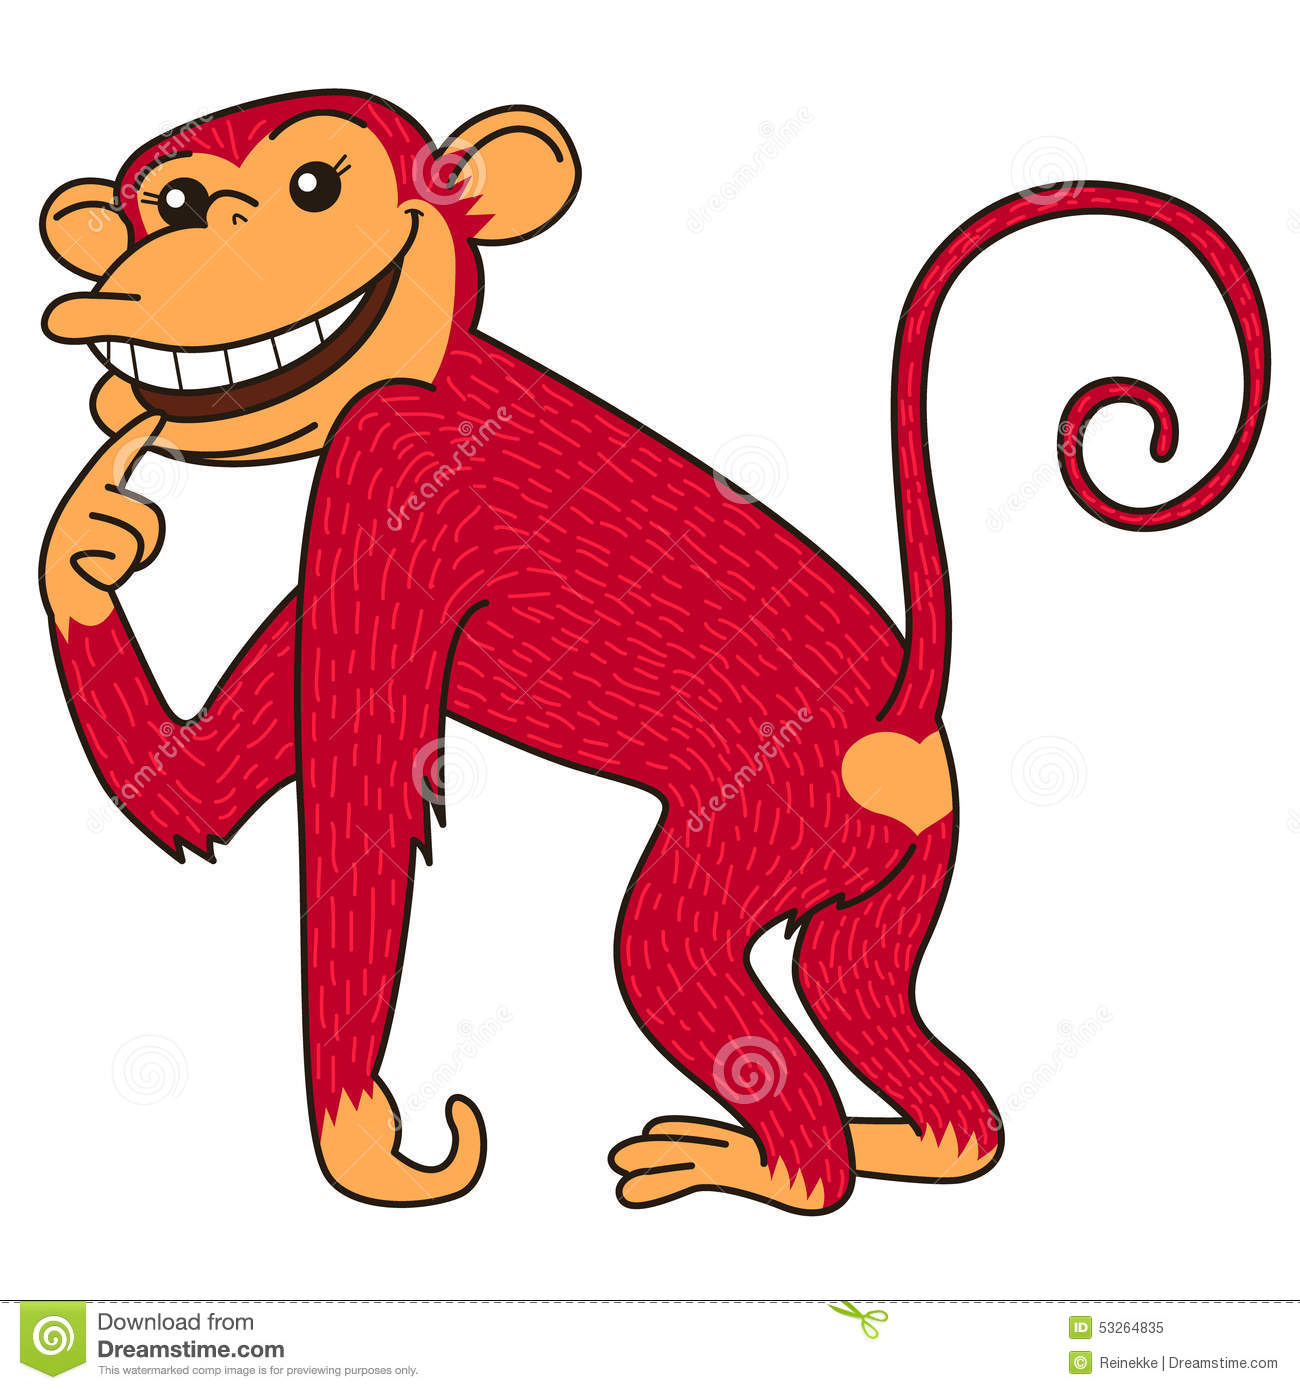 Red monkey is a symbol of the year according to Chinese zodiac.